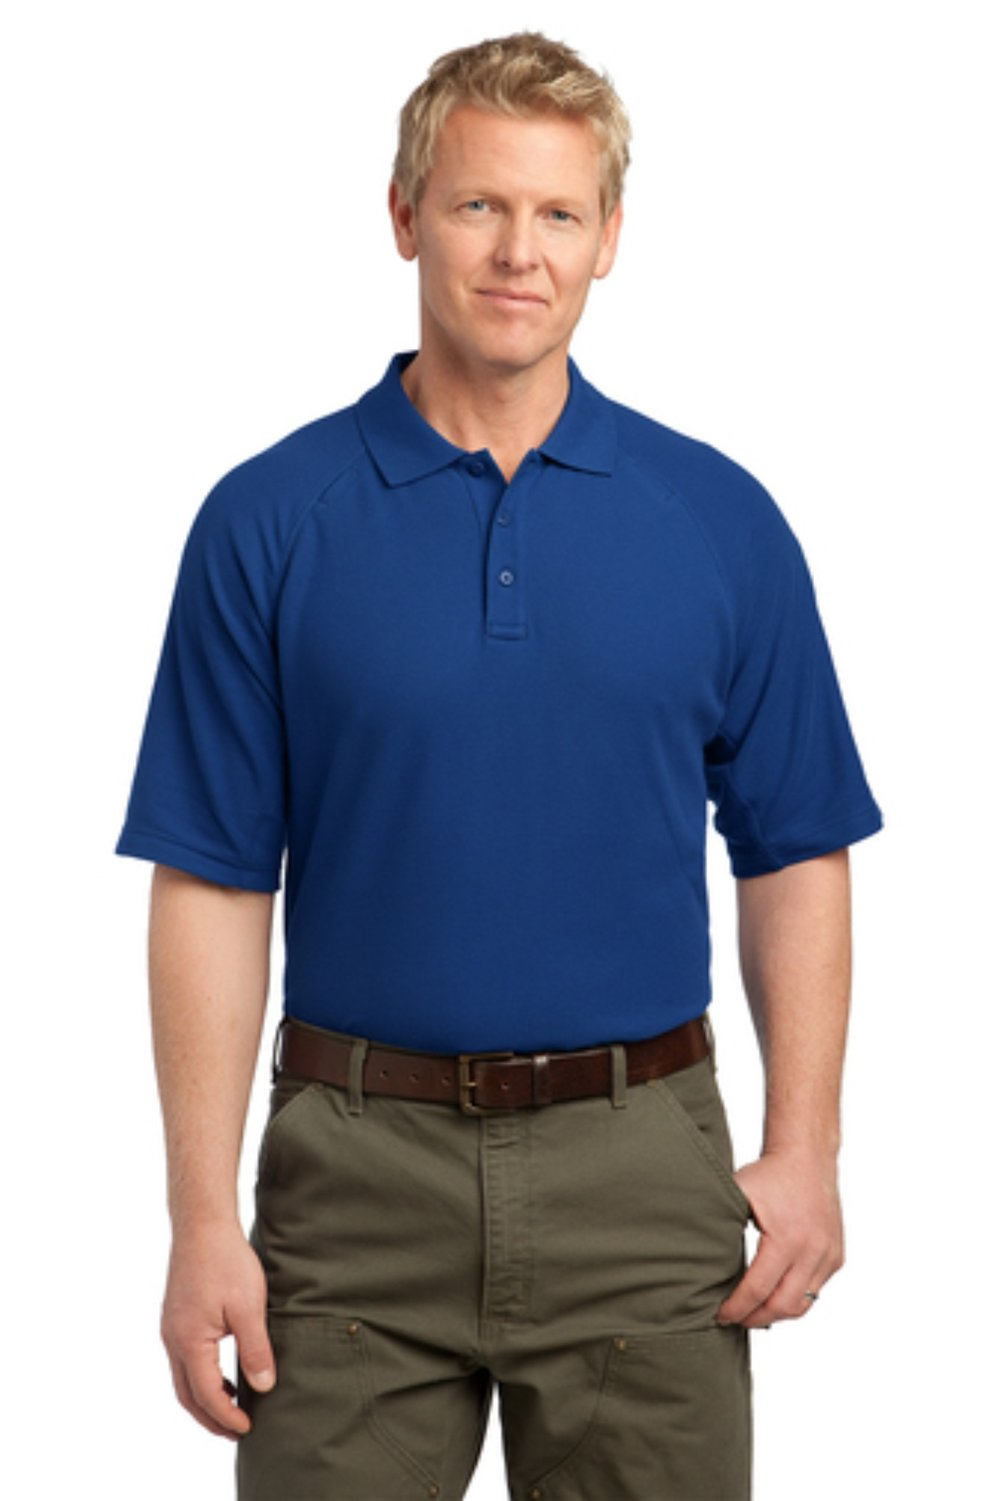 CS414  Corner Stone Cotton Tactical Polo.  $29.00